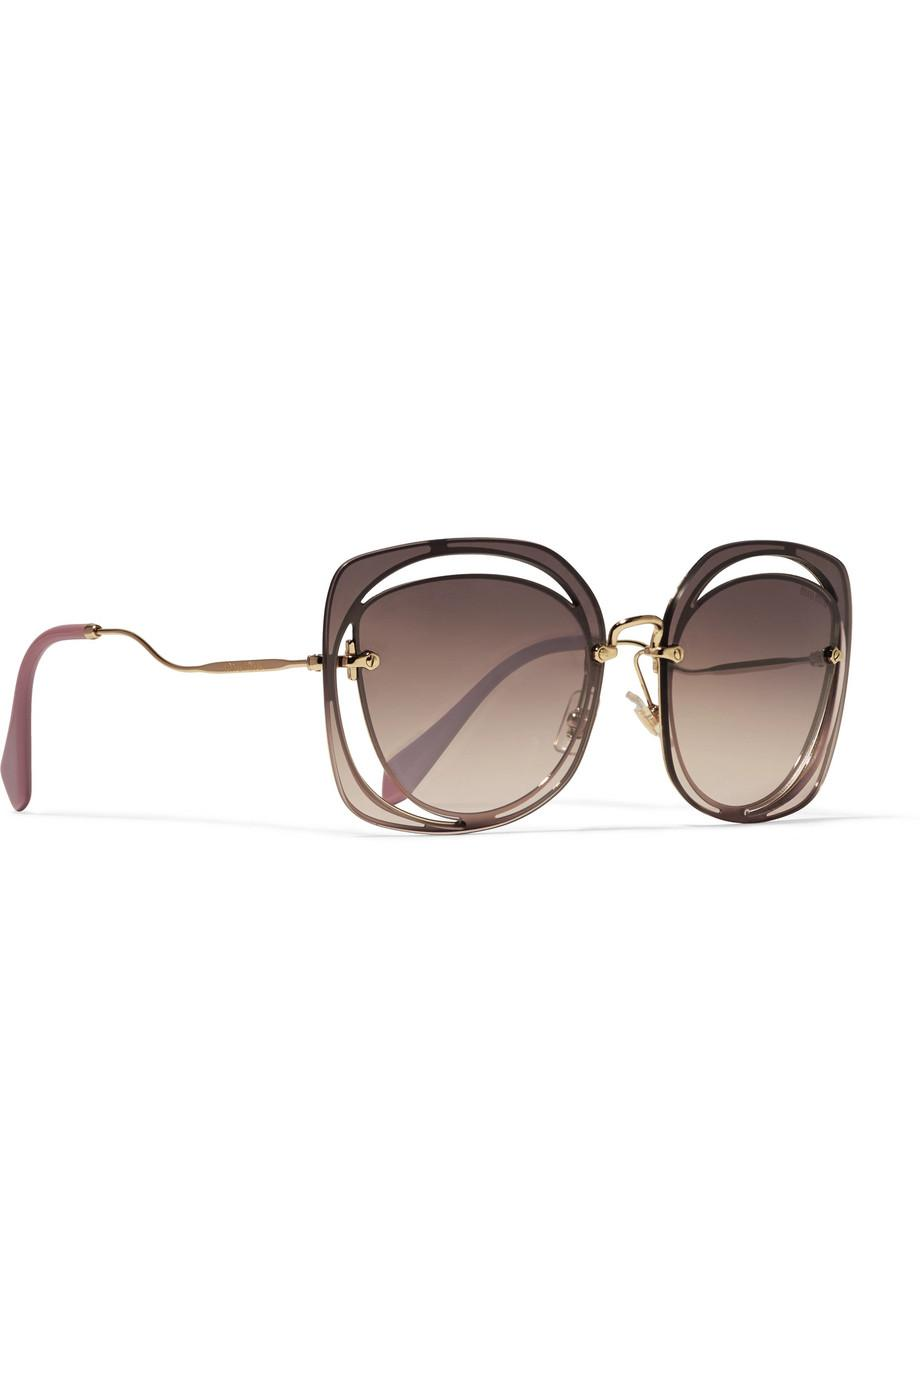 57409d6a3c26 Miu Miu Scenique Square-frame Cutout Acetate And Gold-tone ...